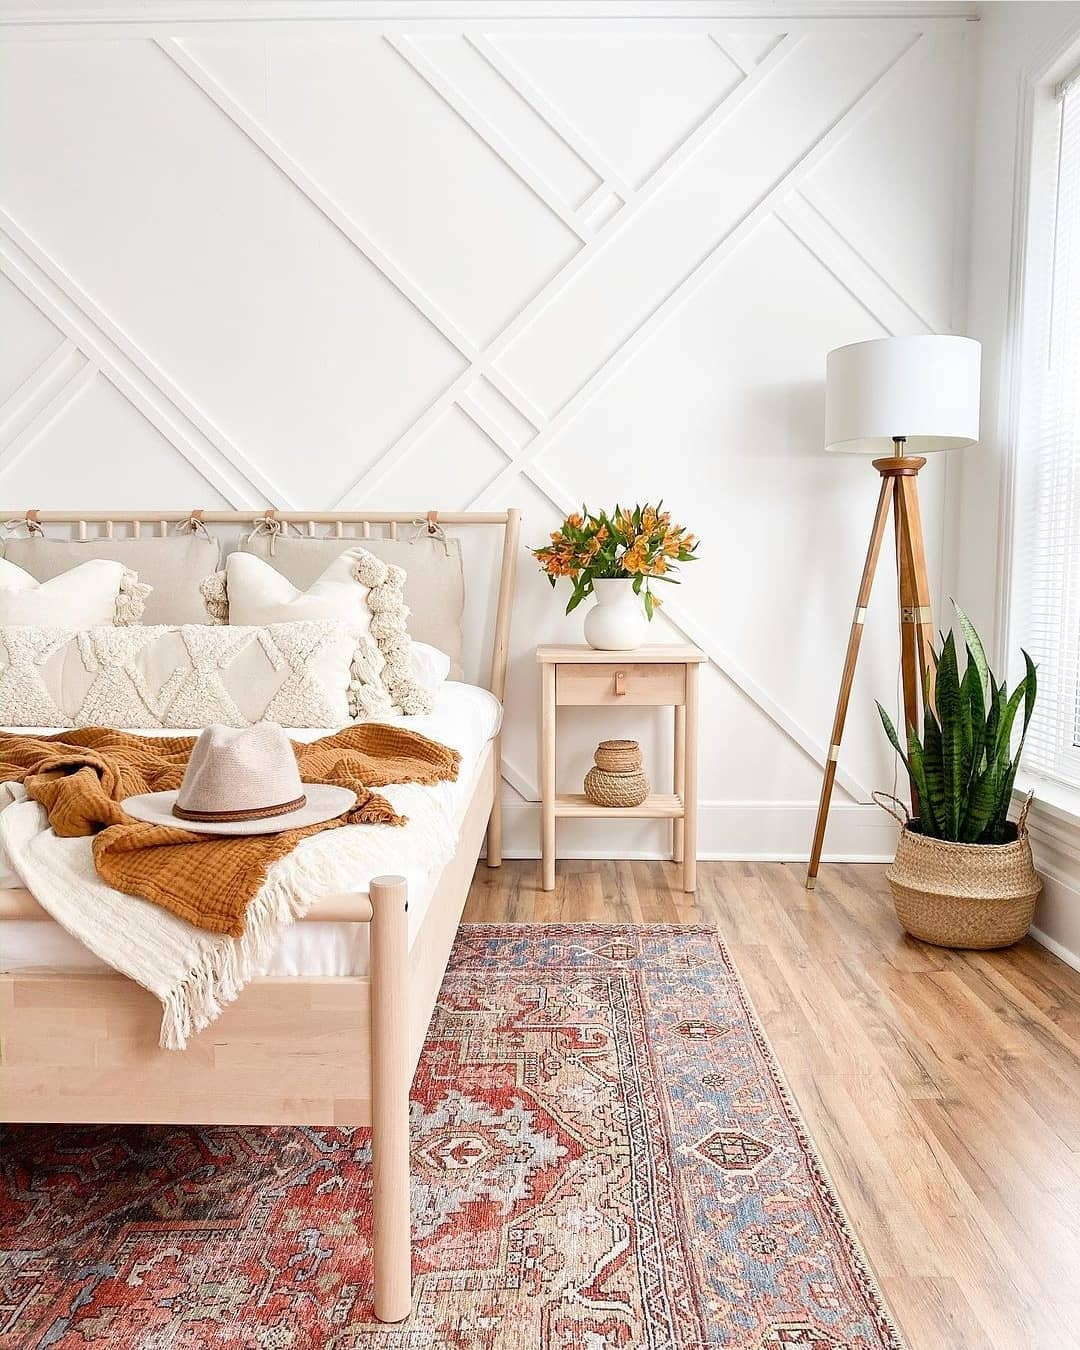 50 Best Ikea Bedroom Ideas In 2021 The Home Decorations